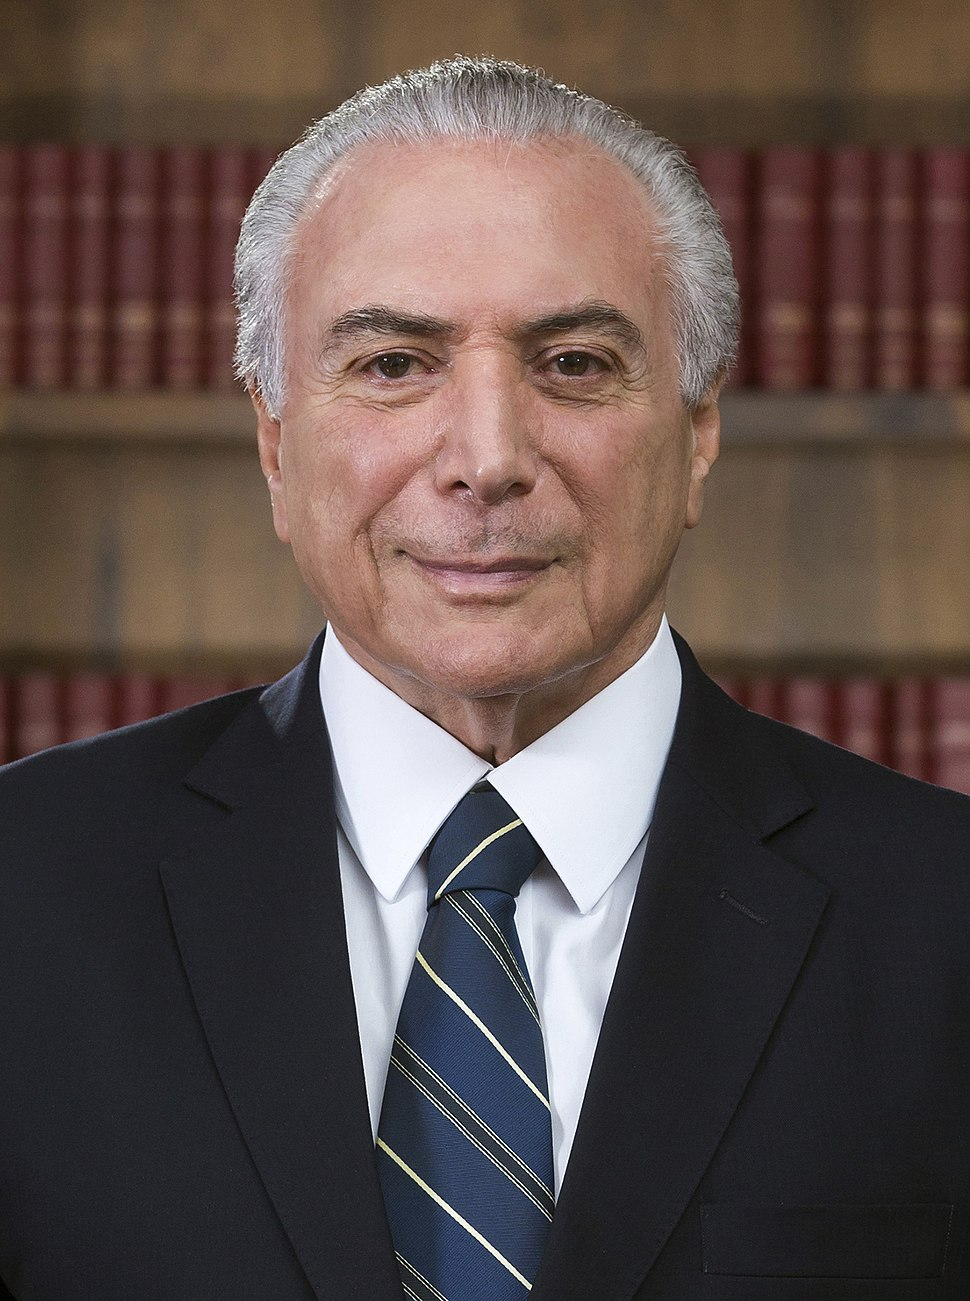 Michel Temer (foto oficial) (cropped)